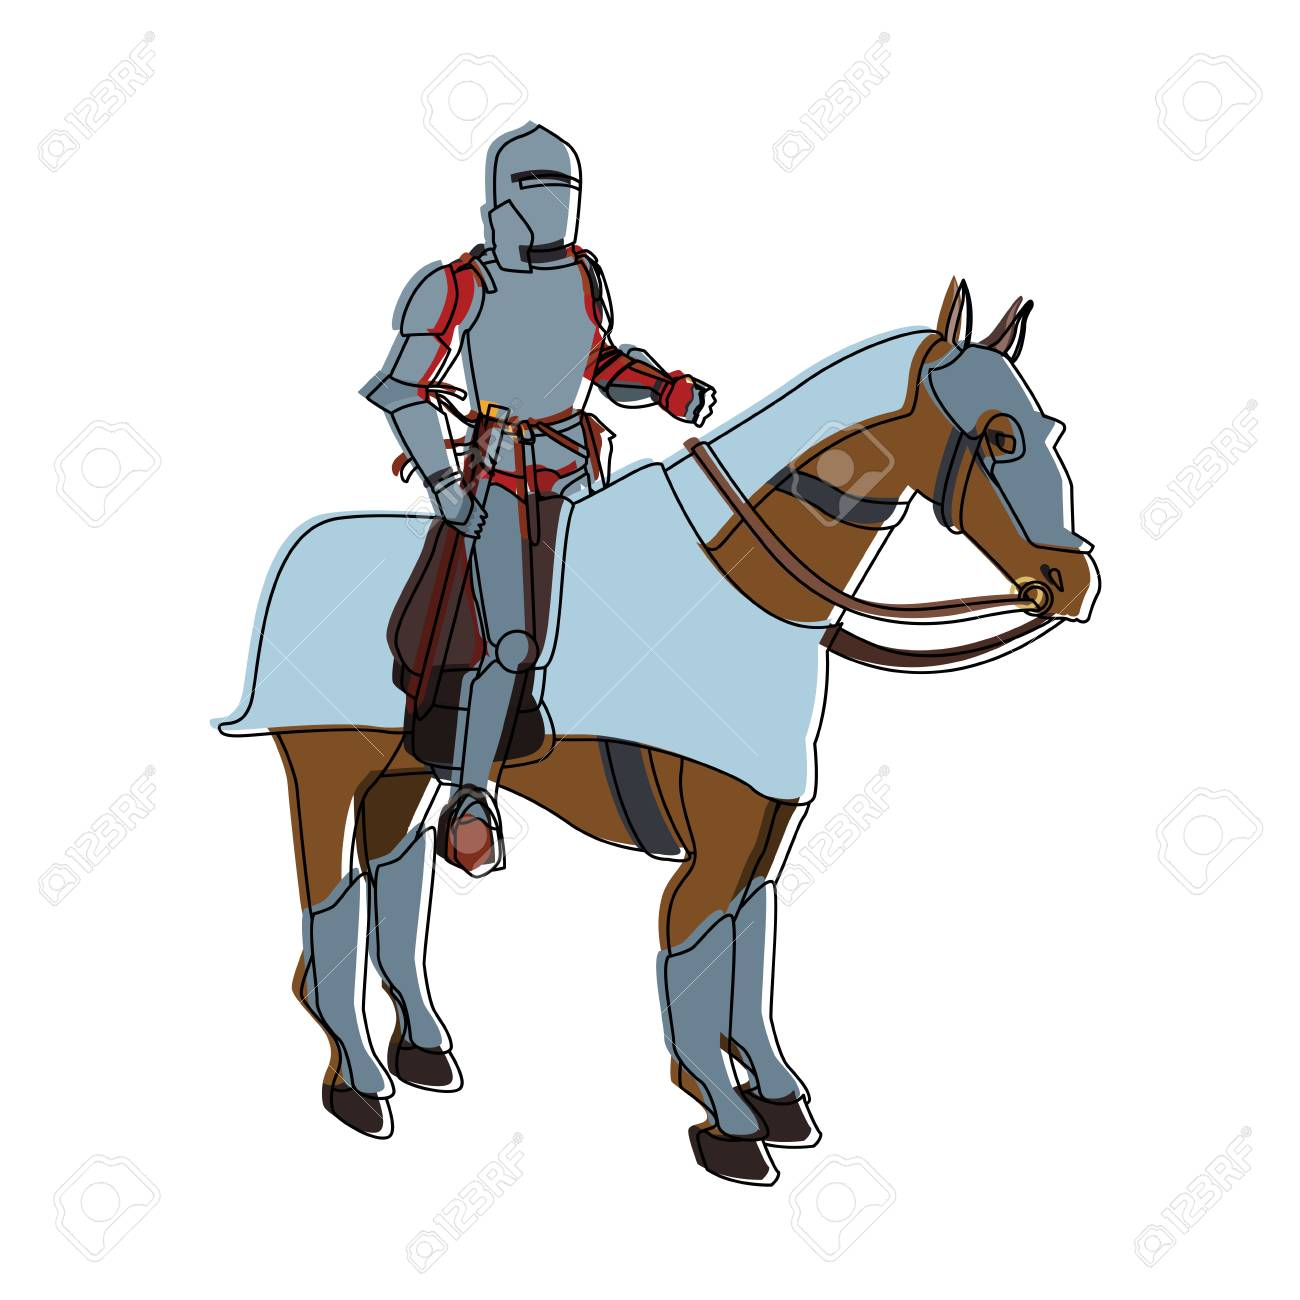 Medieval Warrior On Horse Vector Illustration Graphic Design Royalty Free Cliparts Vectors And Stock Illustration Image 97050114